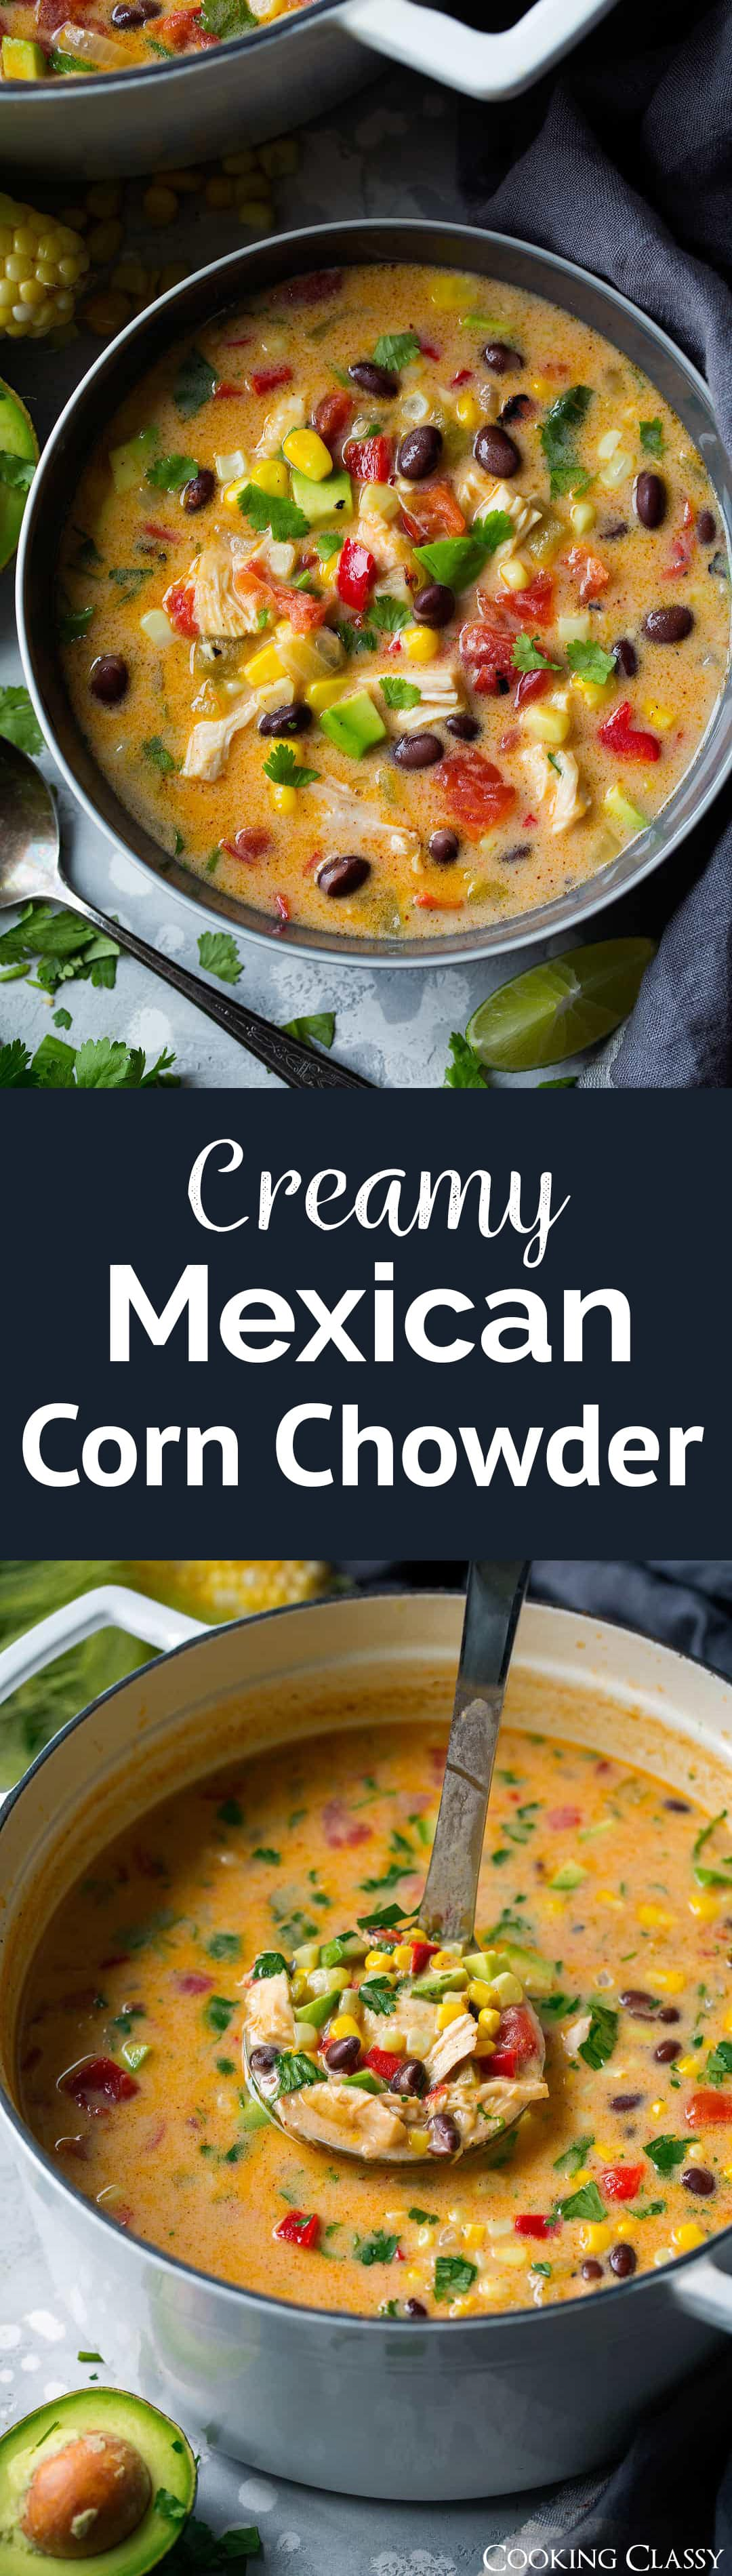 Creamy Mexican Corn Chowder - A creamy, cheesy, veggie and chicken filled soup that's layered with Mexican flavors and sure to satisfy! Uses frozen corn so it can be made year round. #soup #cornchowder #mexican #chicken #recipe